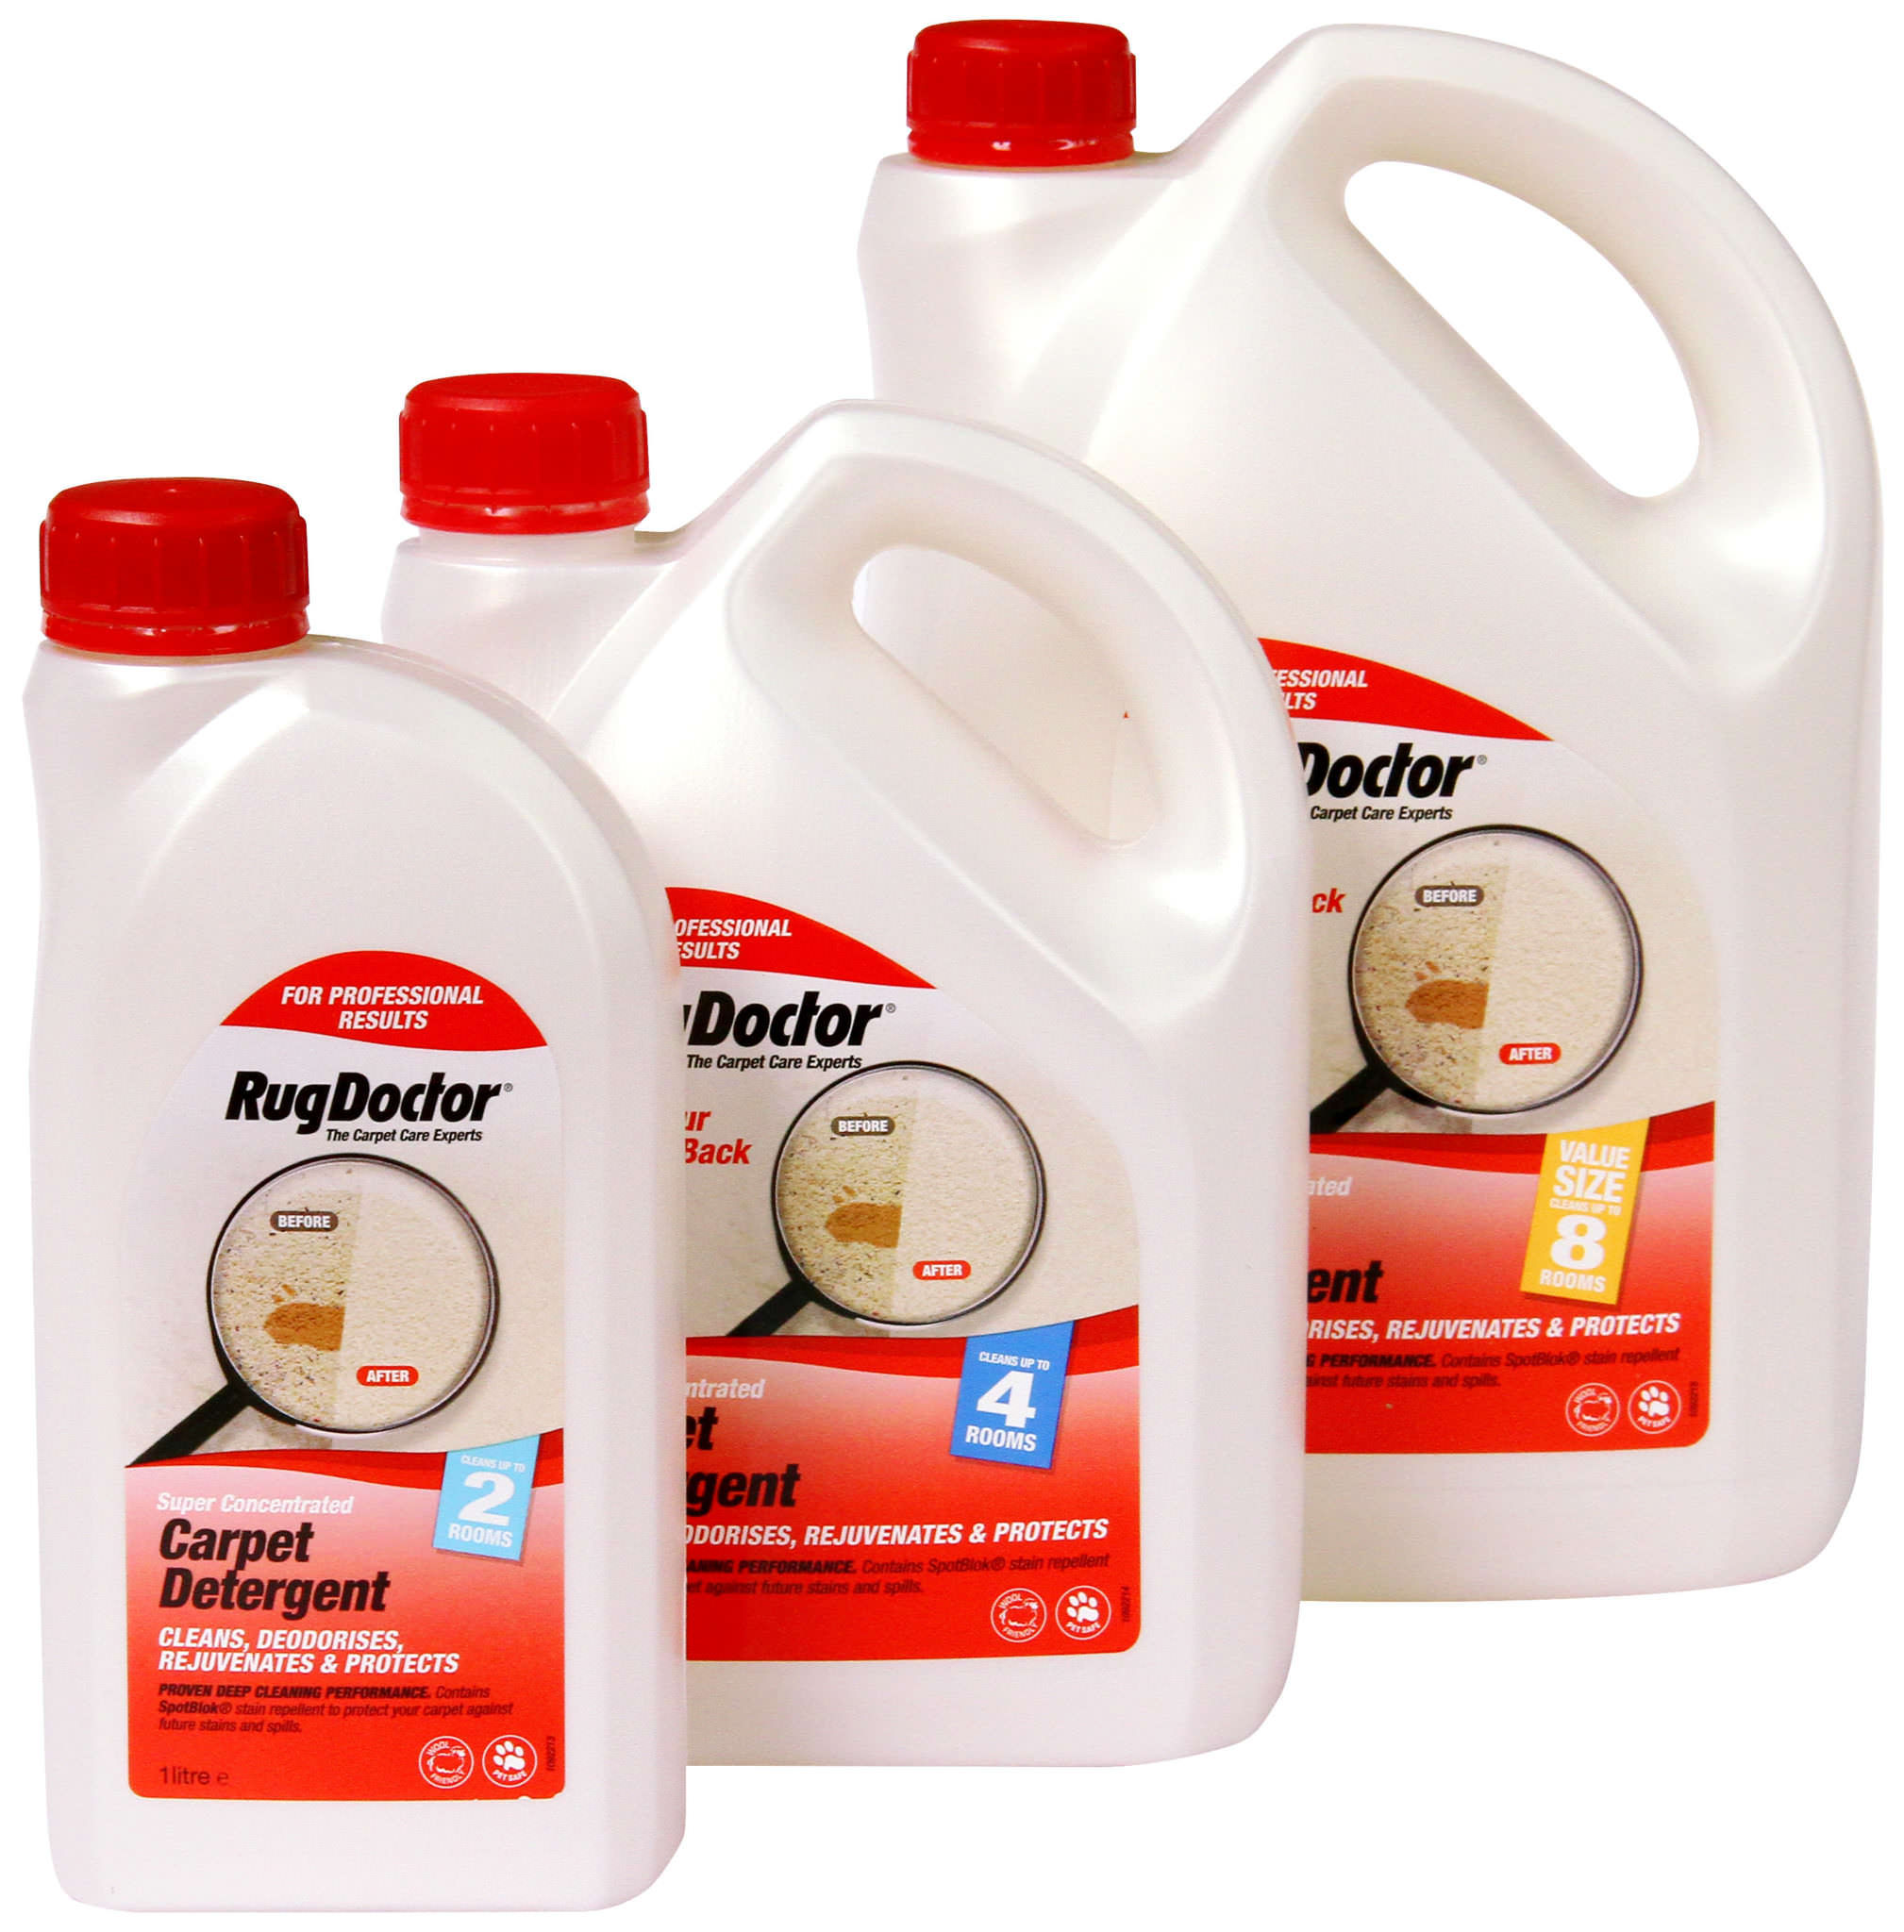 Carpet Detergent With Spotblok 174 Rug Doctor